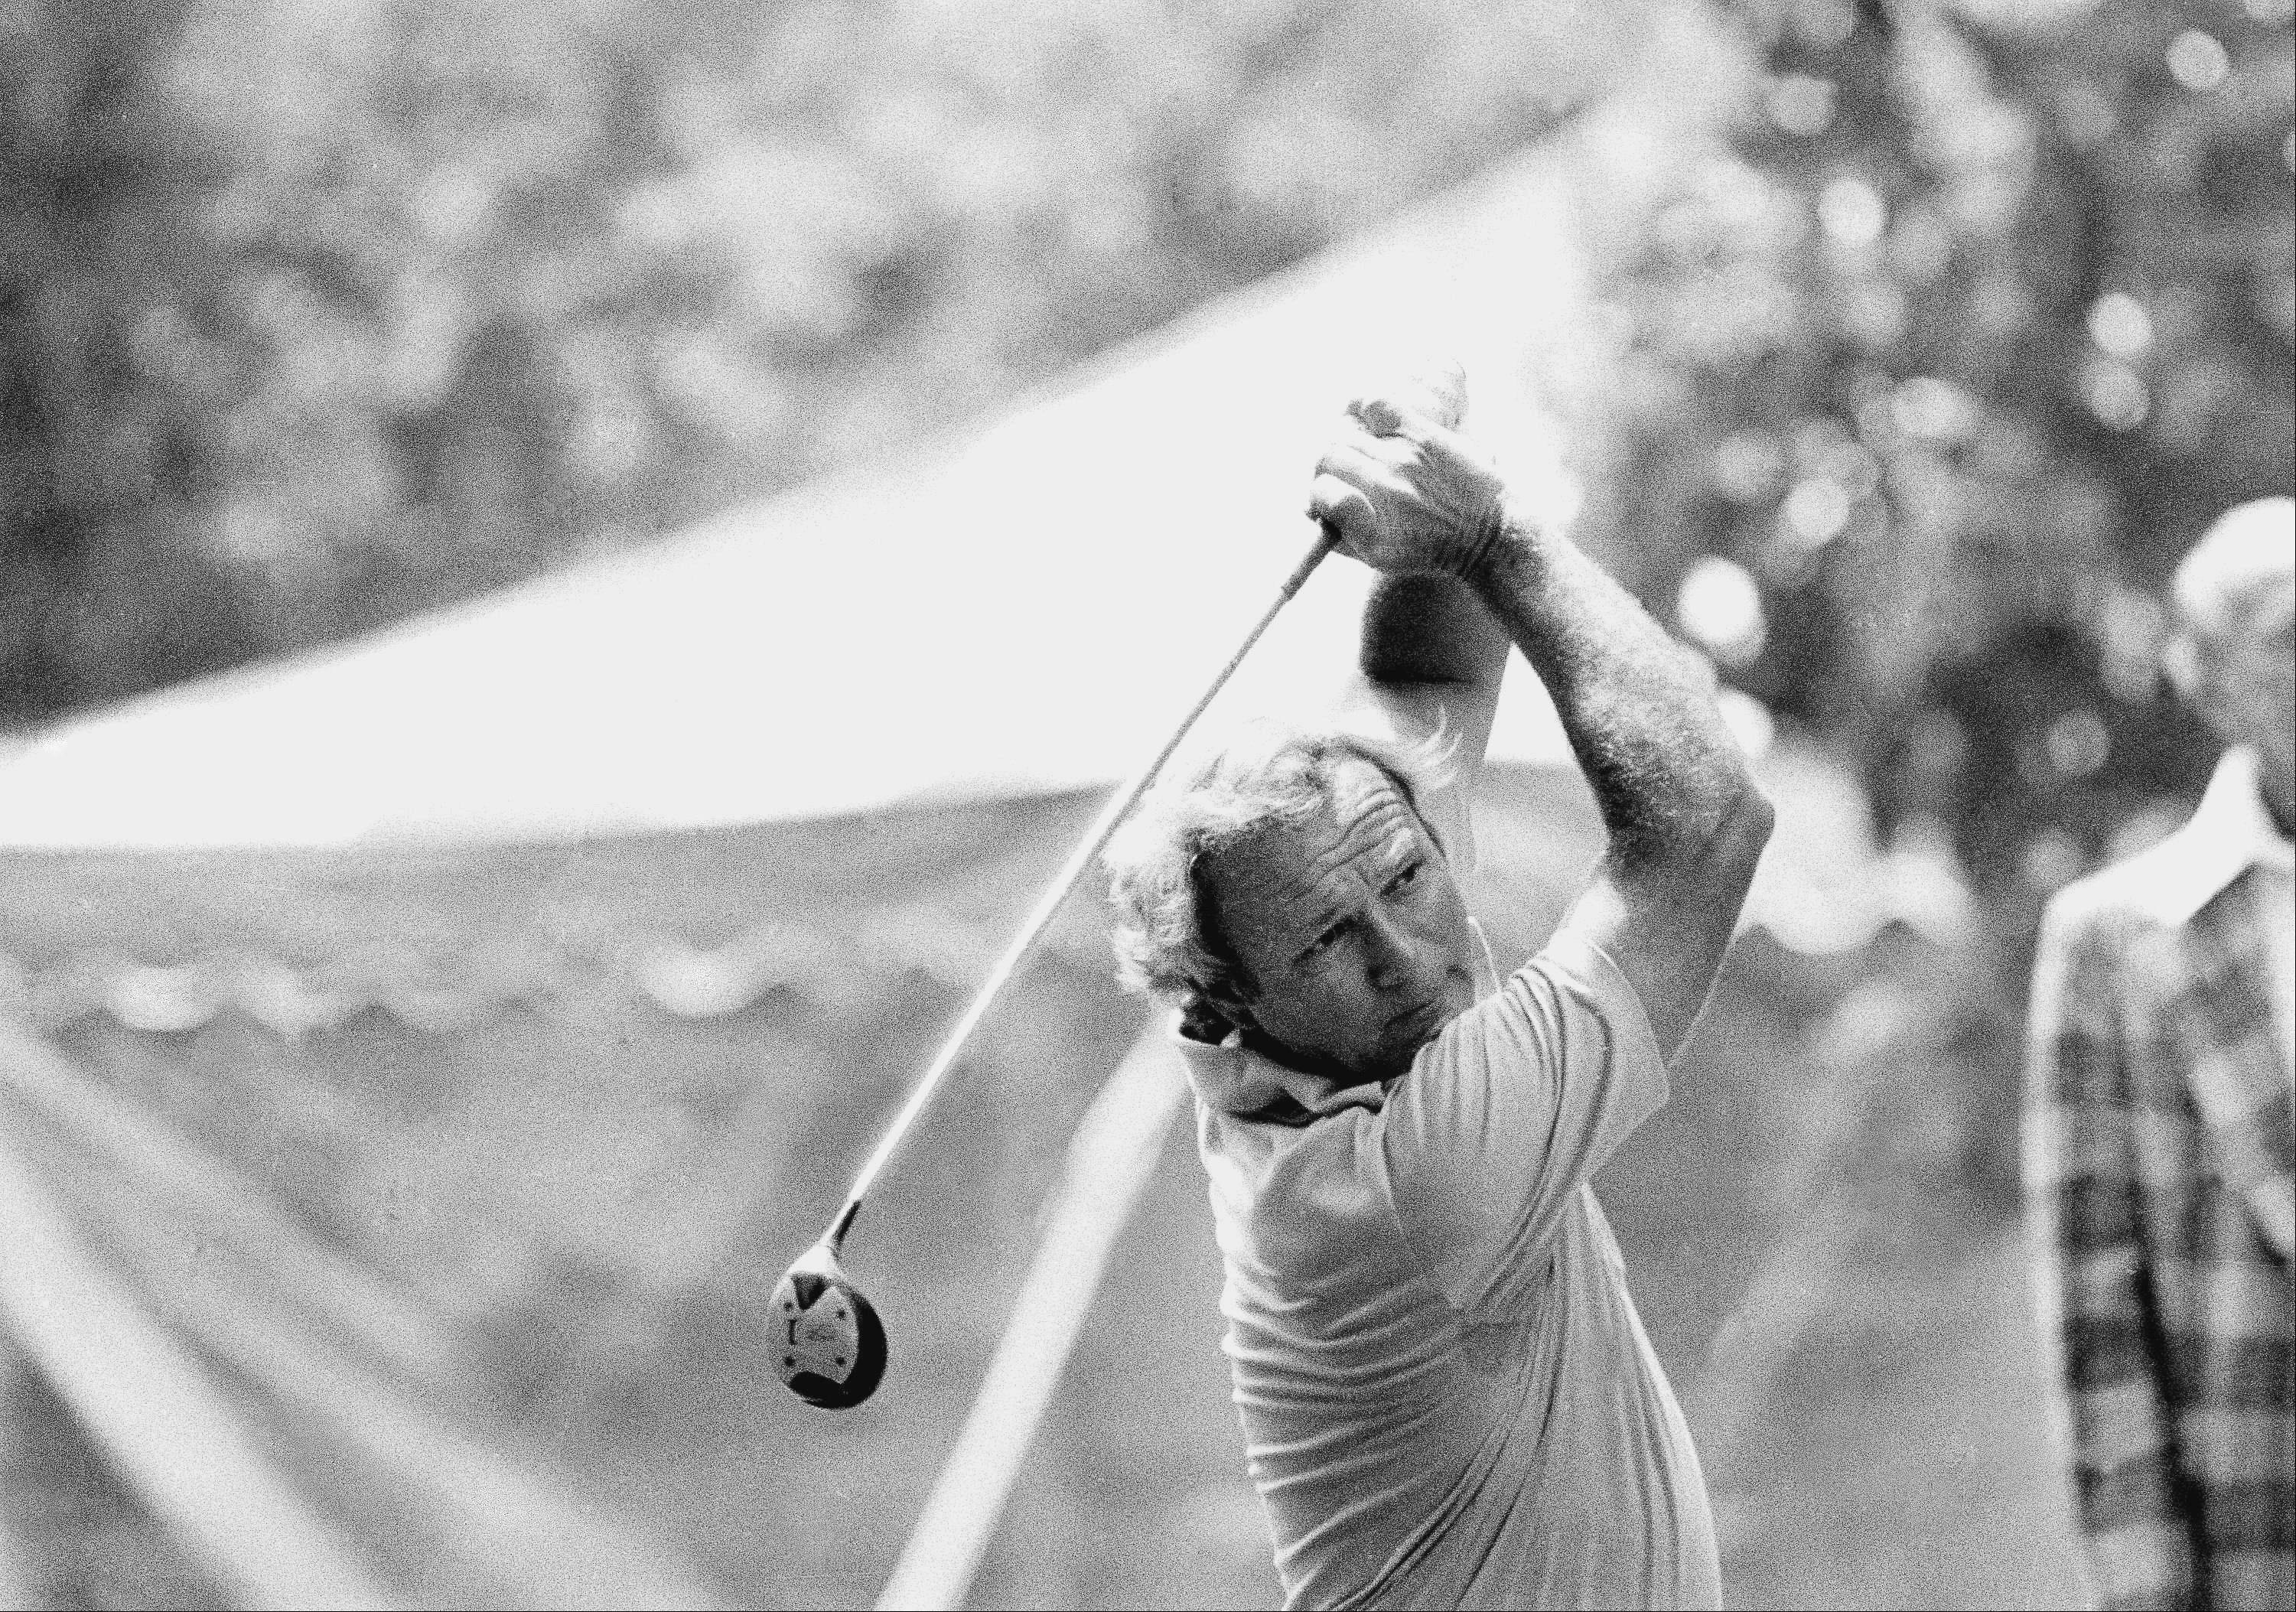 Veteran golfer Arnold Palmer follows his tee shot during a practice round for the U.S. Open in Medinah Country Club, Wednesday, June 12, 1975, Medinah, Ill. Nicklaus will compete at Medinah in the U.S. Open which begins next week.